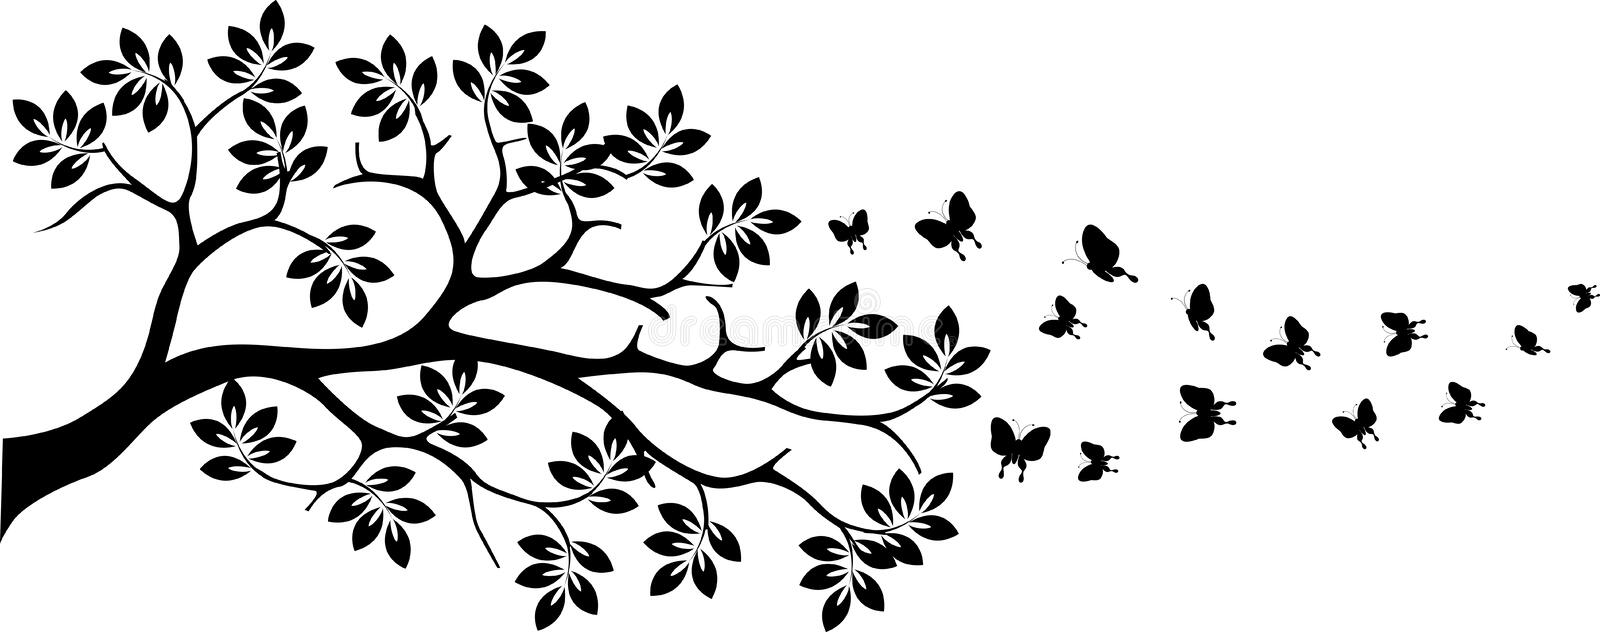 Black tree silhouette with butterfly flying. Vector illustration of black tree silhouette with butterfly flying royalty free illustration